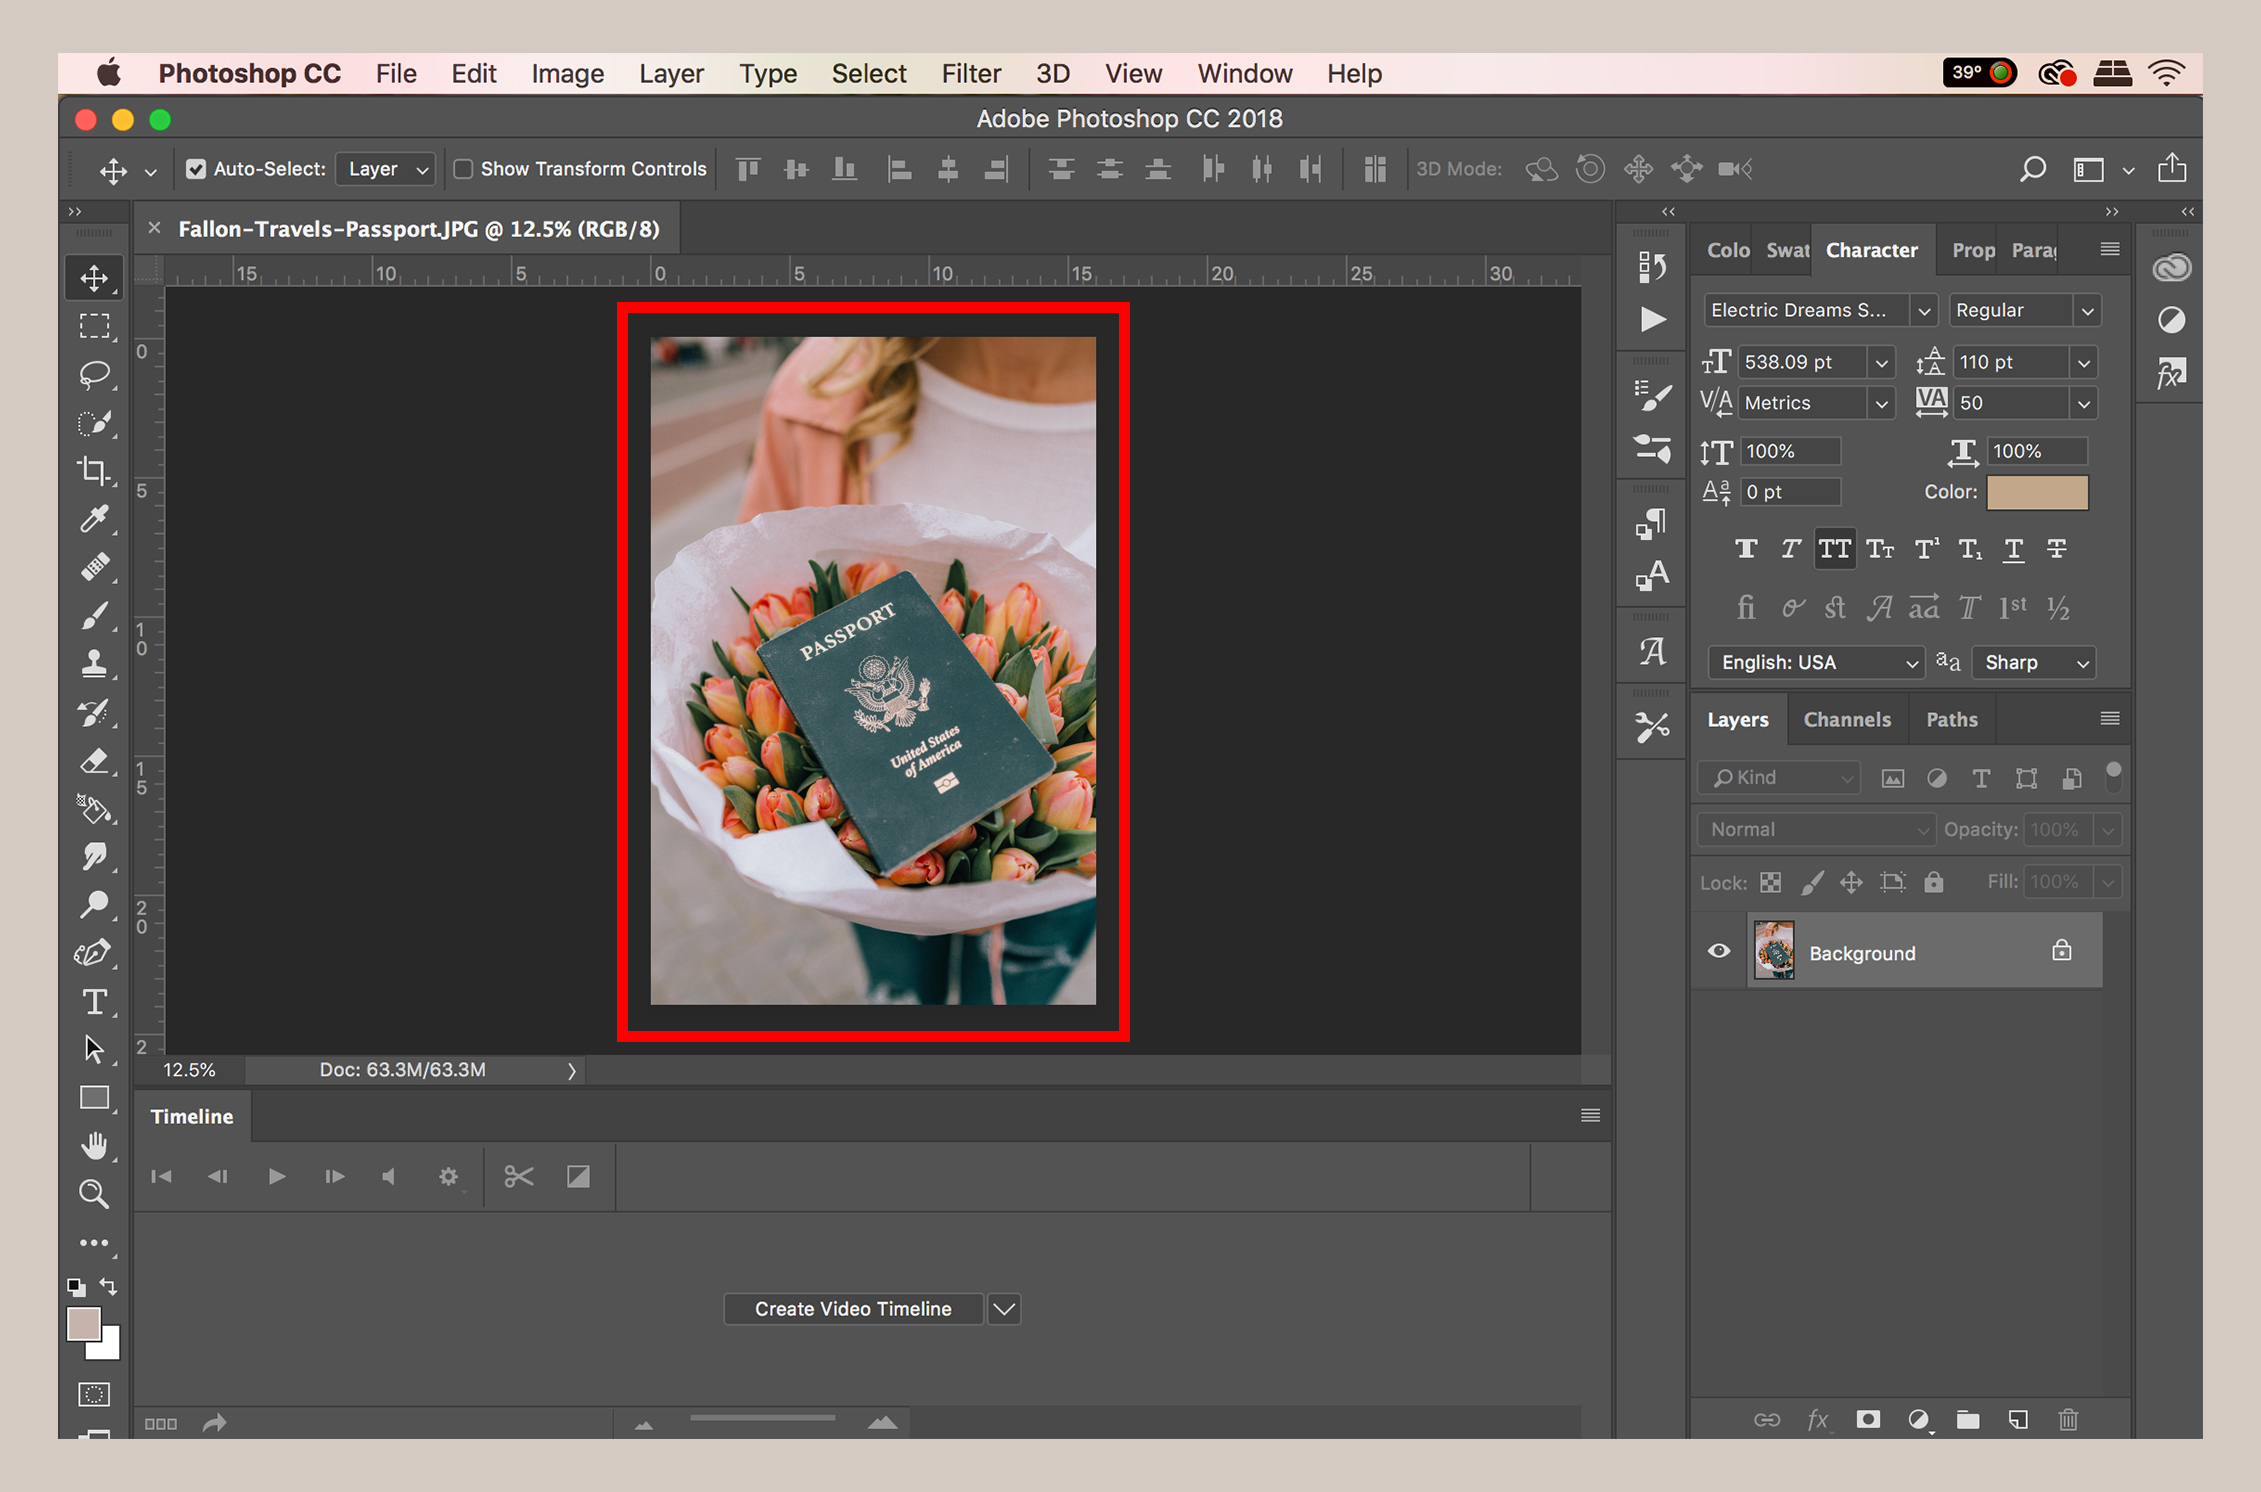 How to add an image to Photoshop